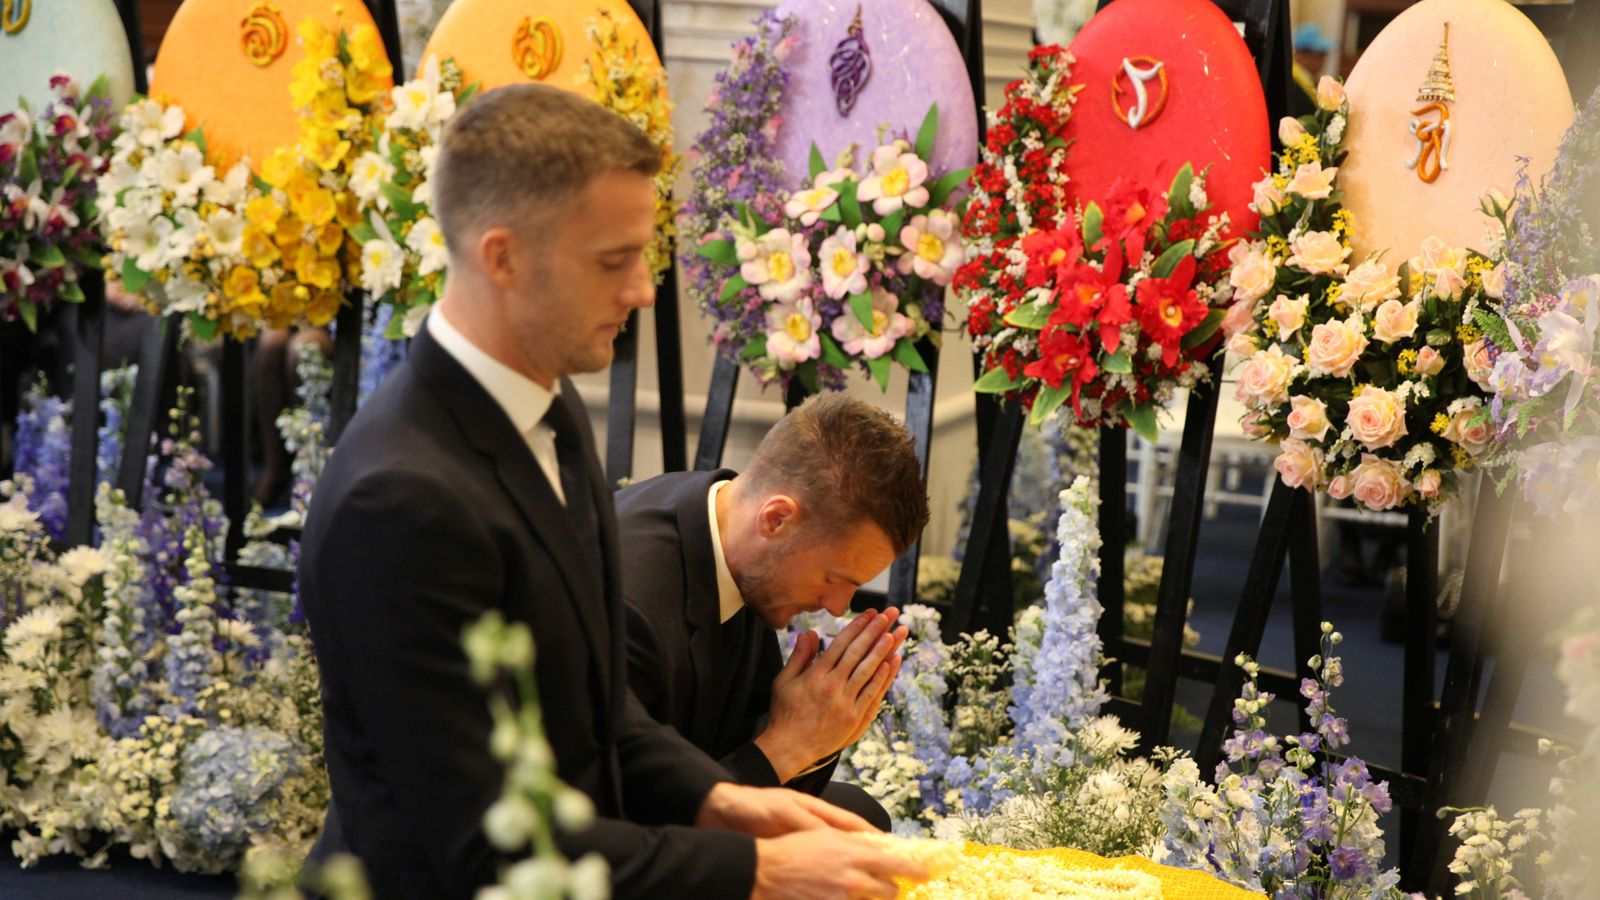 Leicester city players attend thai temple for funeral of club owner leicester city players attend thai temple for funeral of club owner vichai srivaddhanaprabha izmirmasajfo